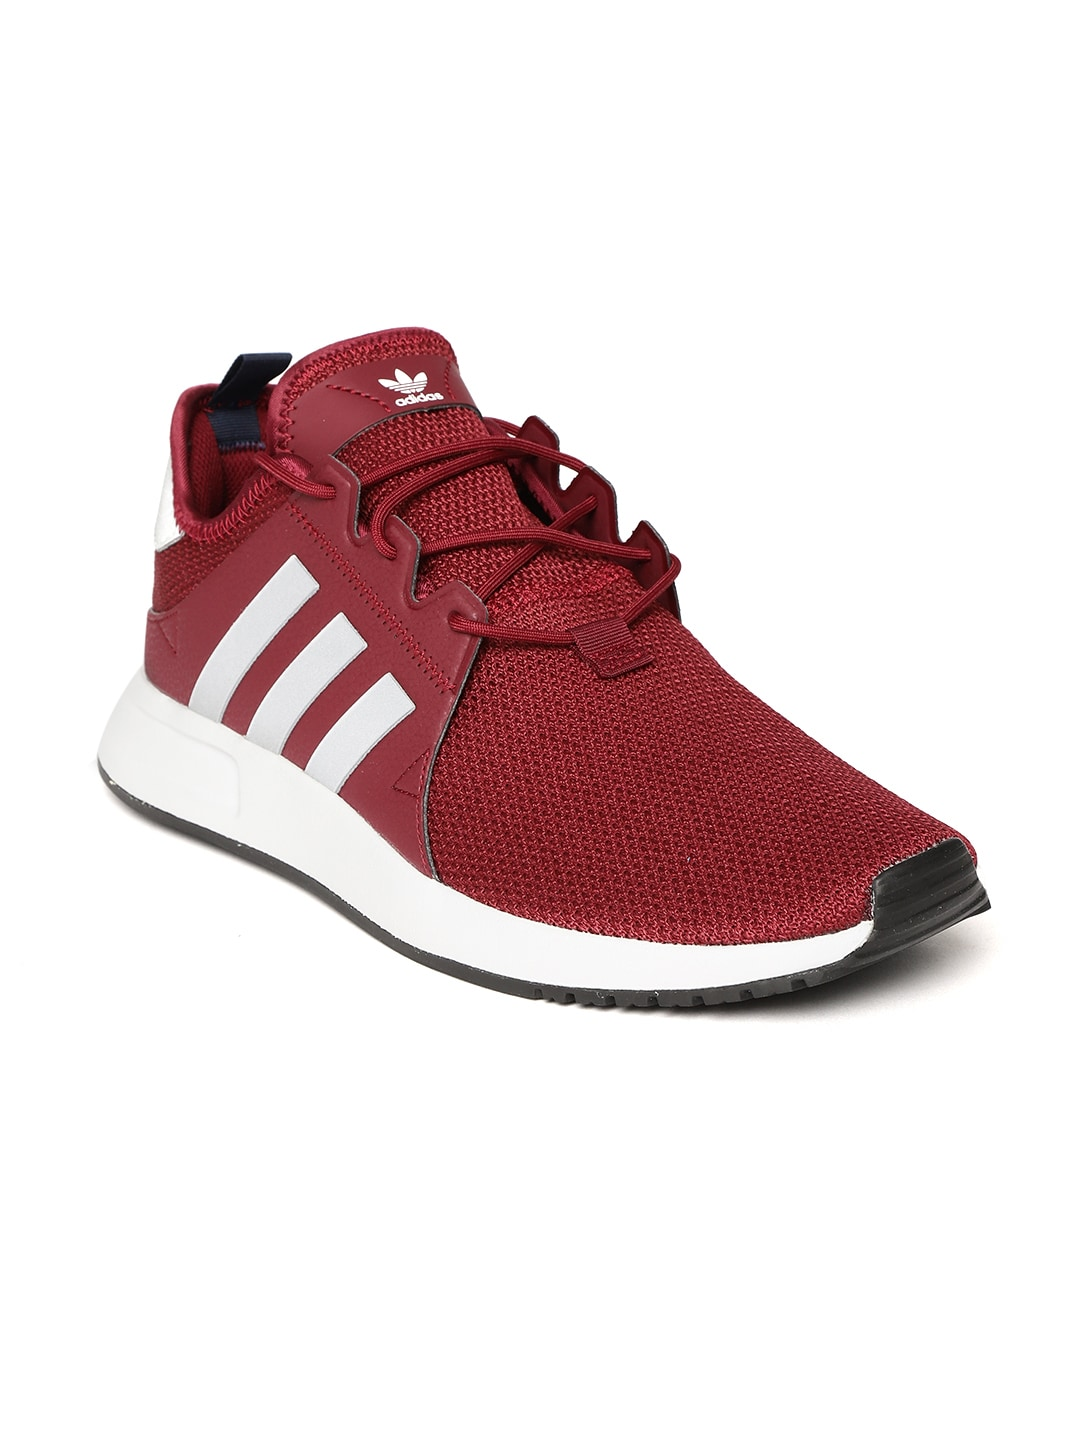 6e13deb87 Maroon Casual Shoes - Buy Maroon Casual Shoes Online in India